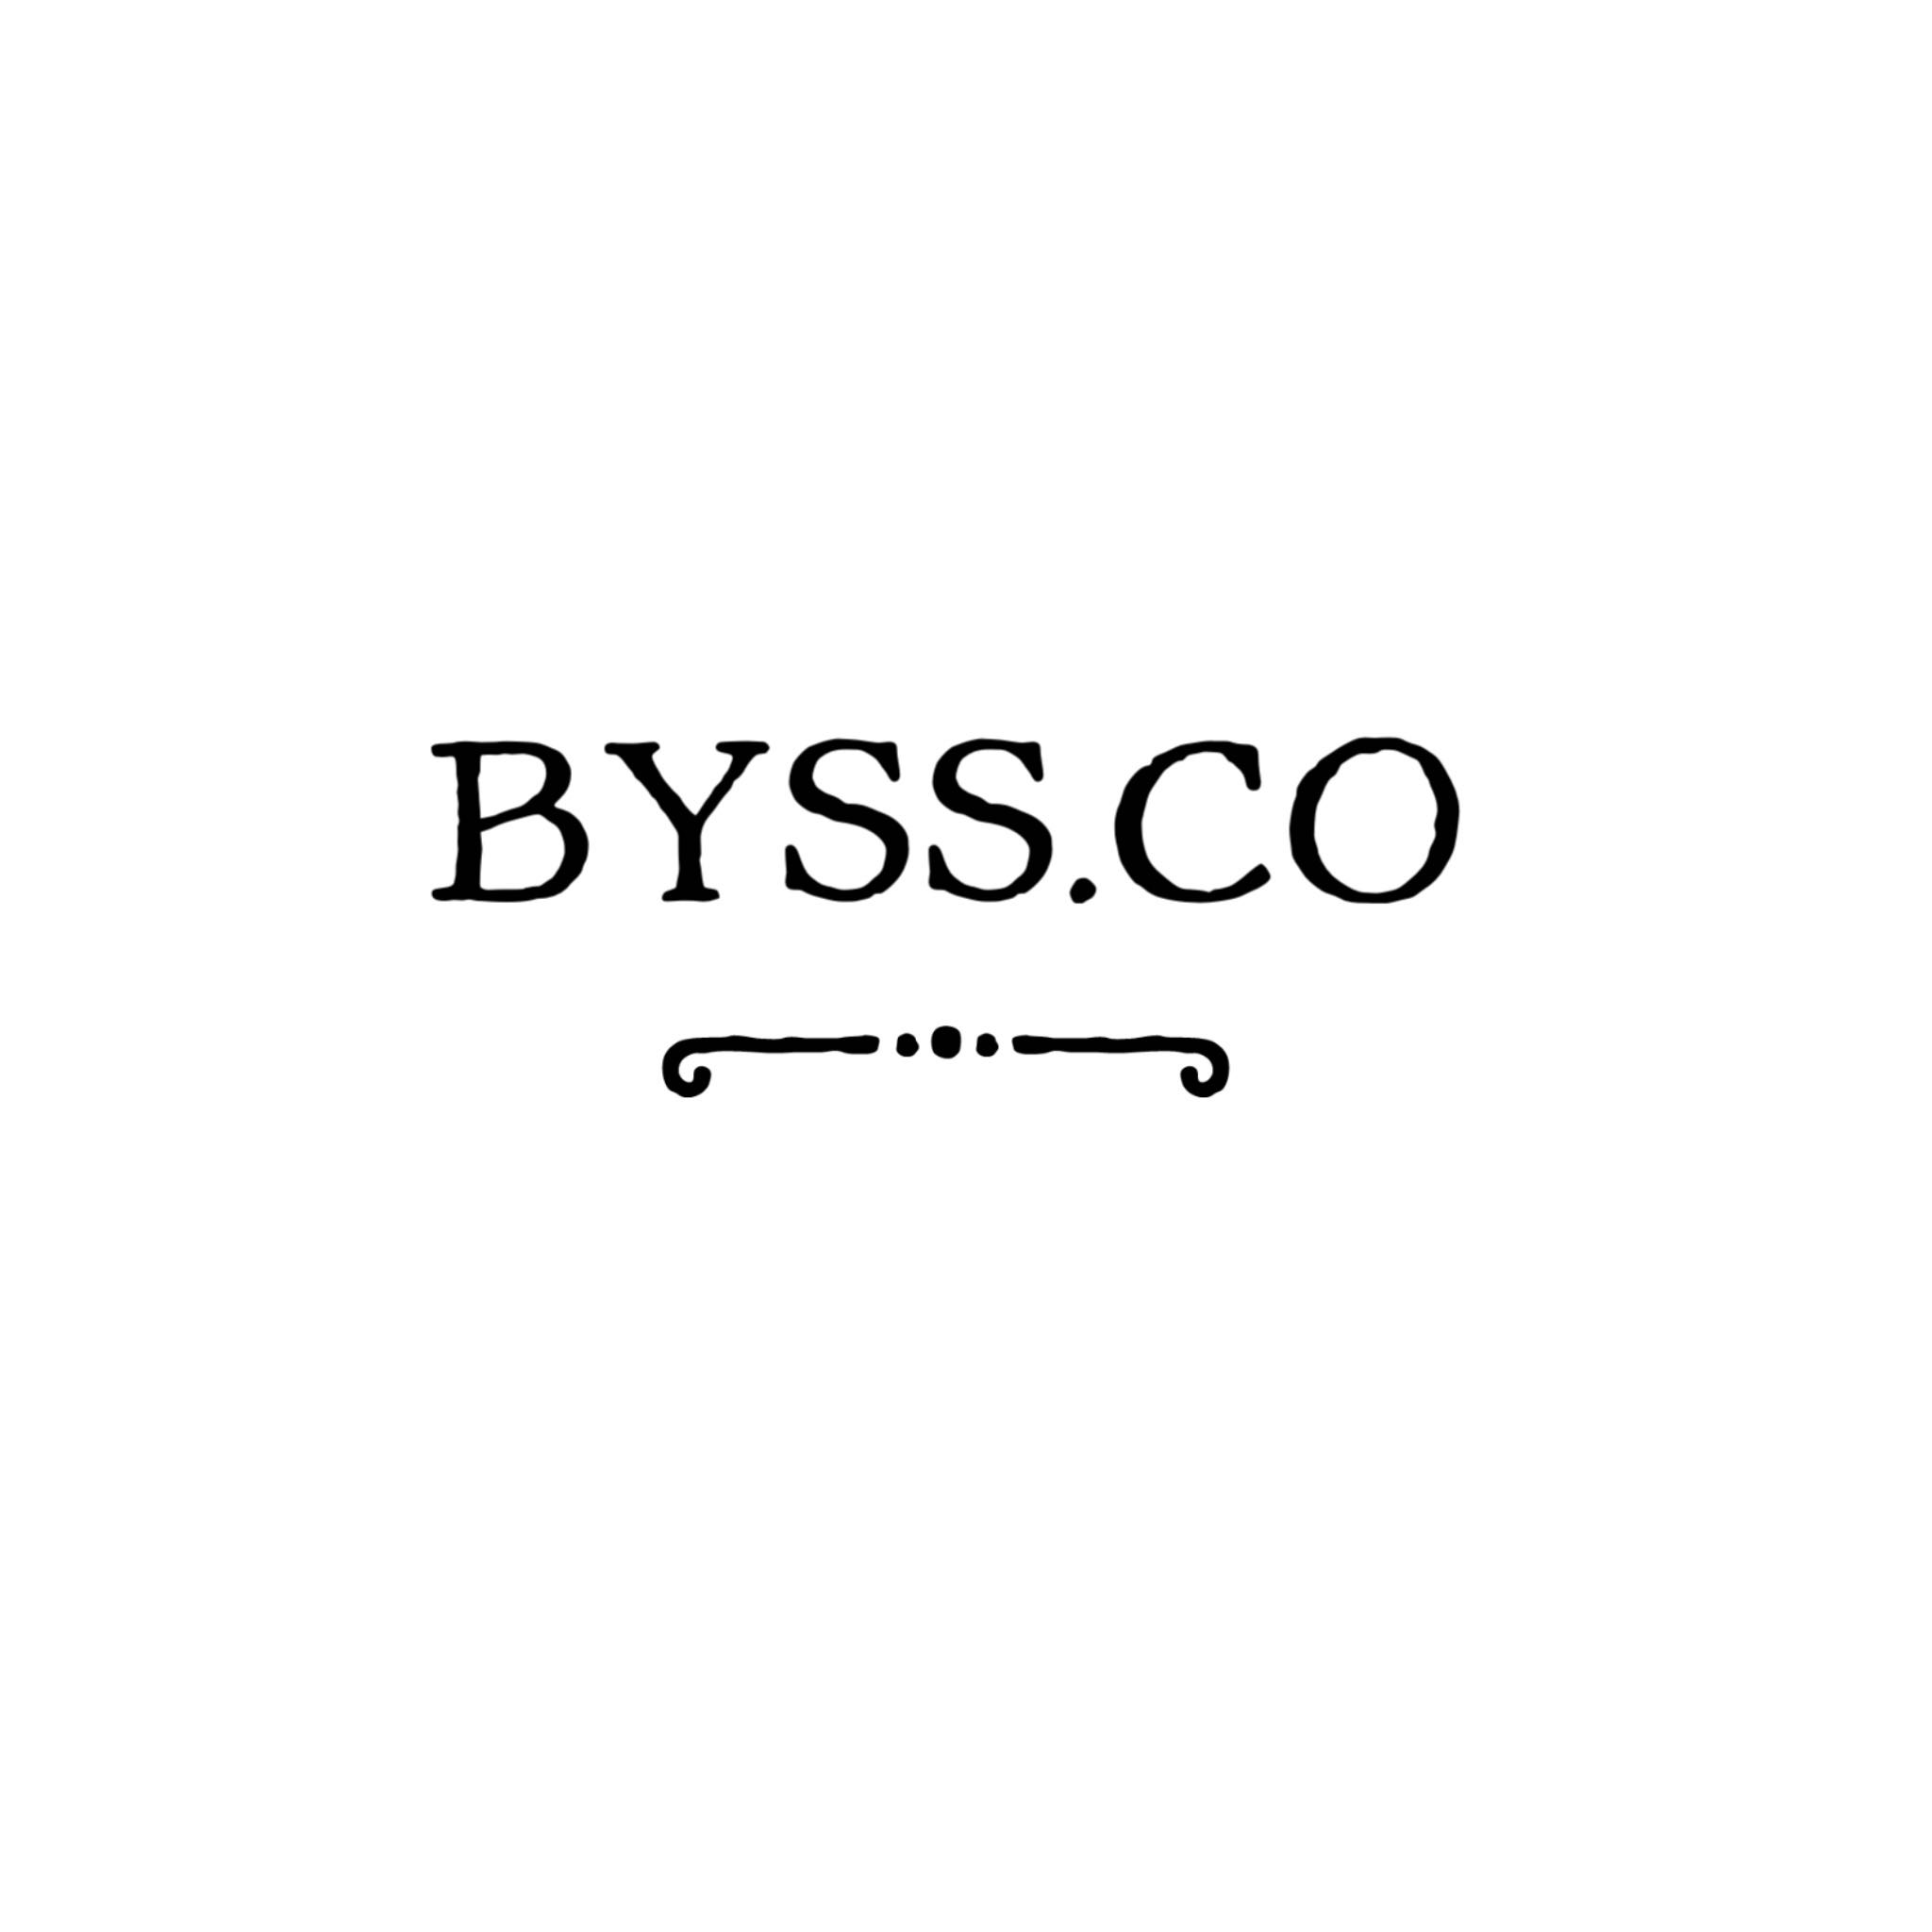 byss.co